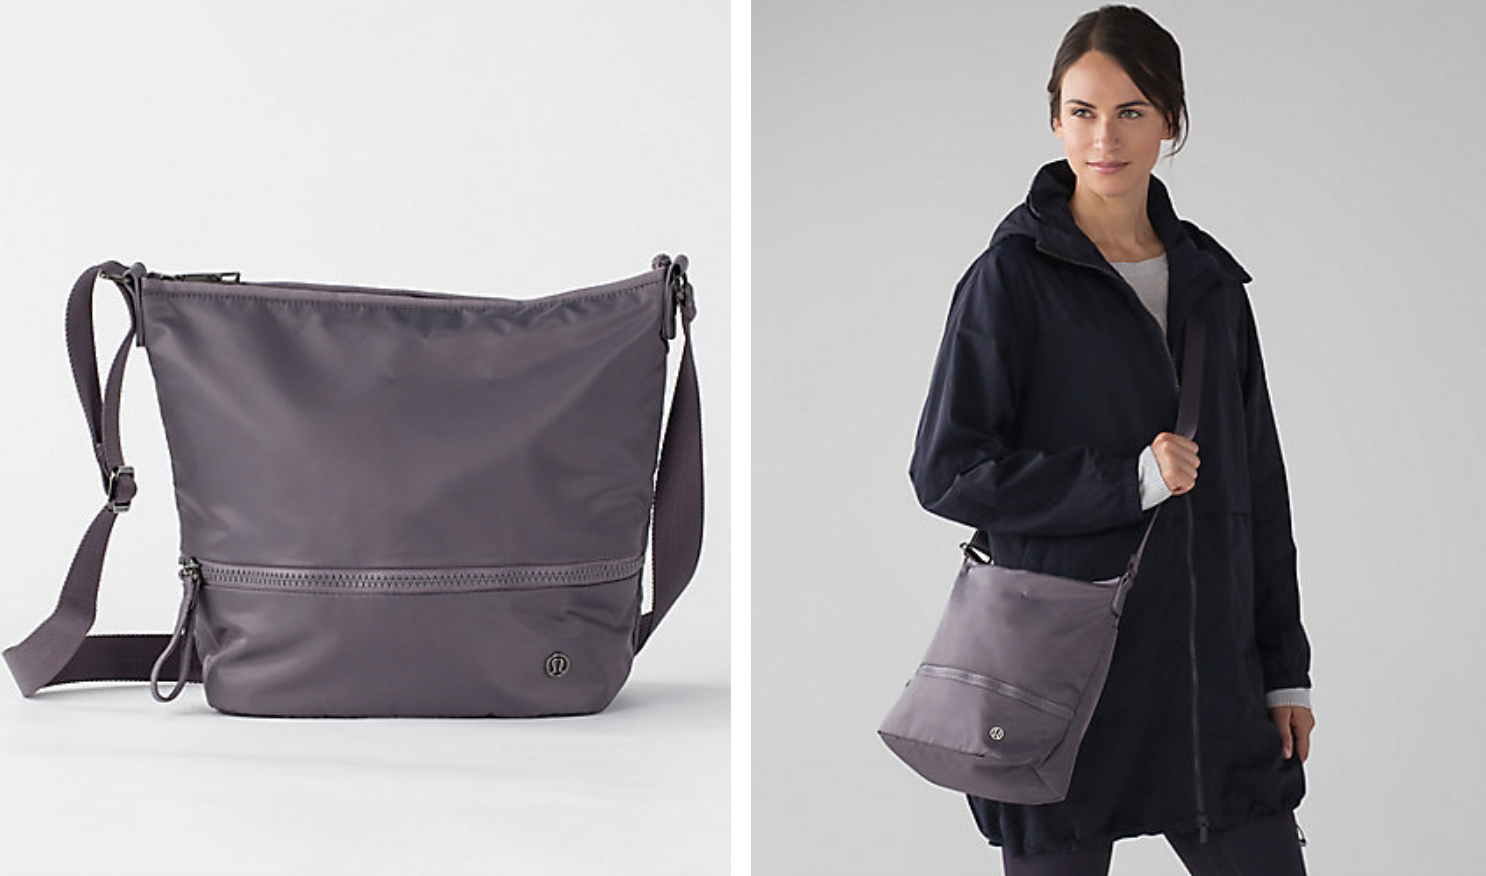 https://api.shopstyle.com/action/apiVisitRetailer?url=https%3A%2F%2Fshop.lululemon.com%2Fp%2Fbags%2FGo-Lightly-Shoulder-Bag%2F_%2Fprod8431477%3Frcnt%3D5%26N%3D1z13ziiZ7z5%26cnt%3D47%26color%3DLW9AJ9S_1257&site=www.shopstyle.ca&pid=uid6784-25288972-7